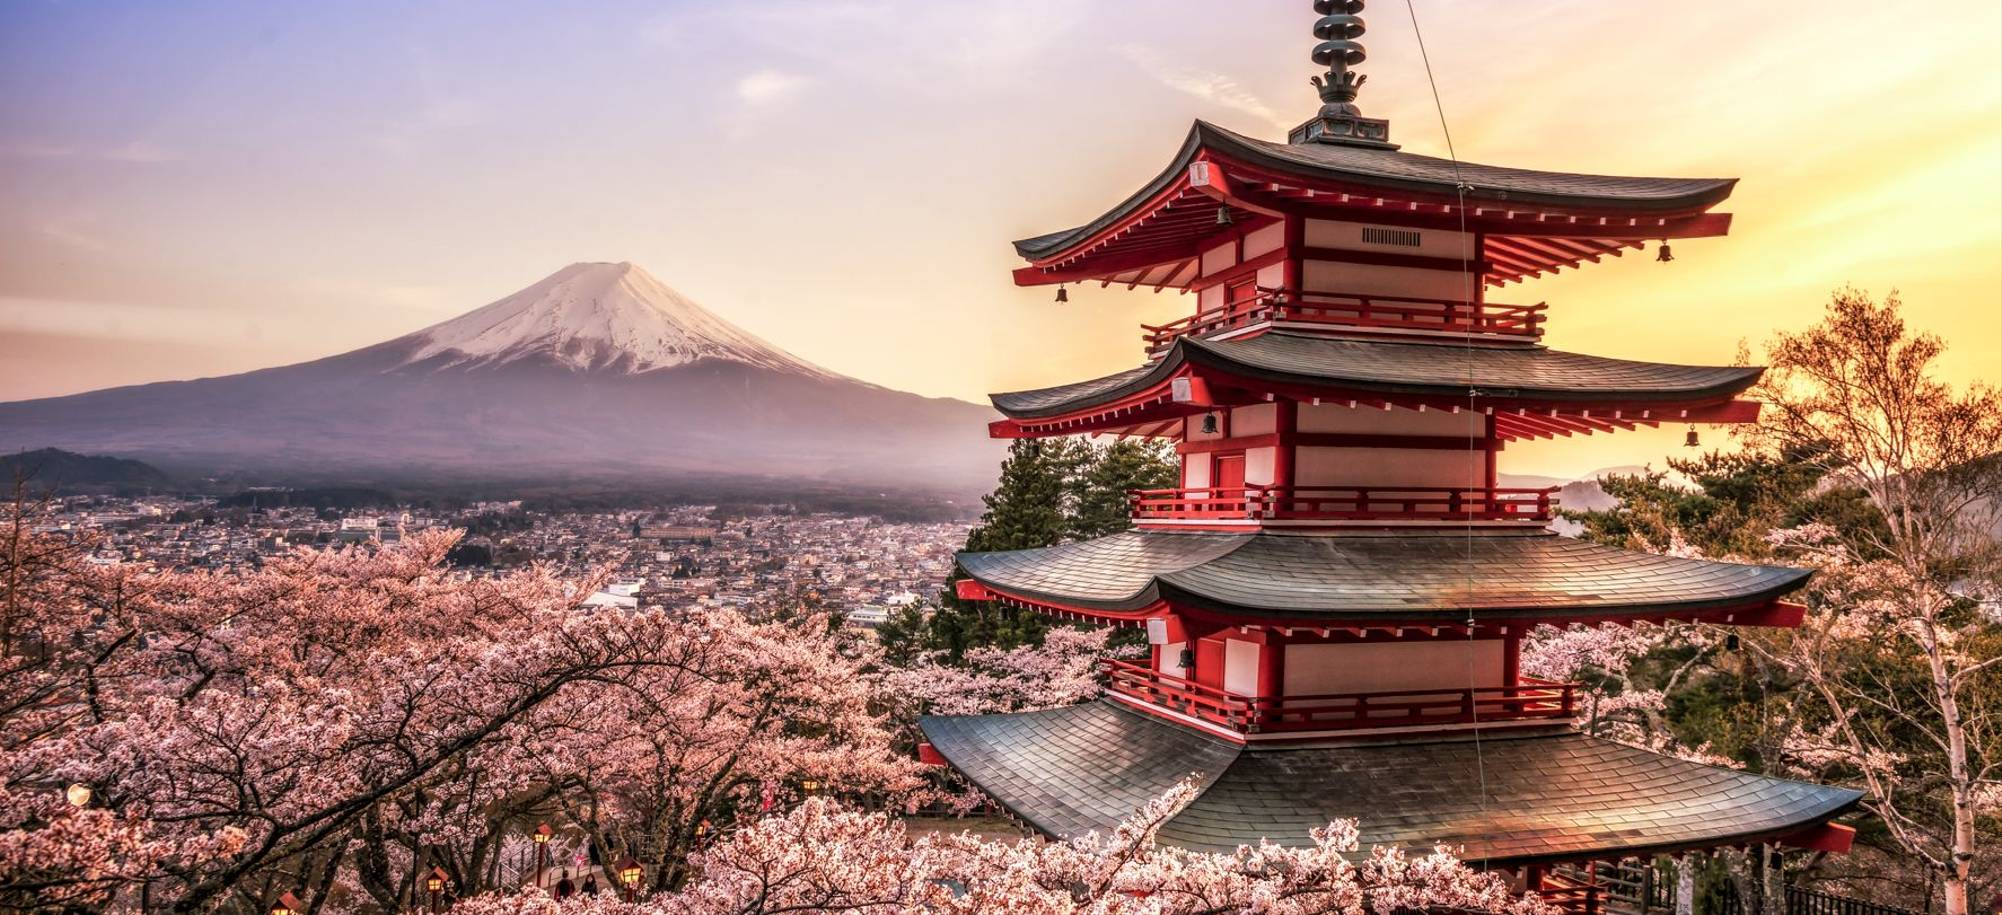 23 Day   Tokyo   Mountain Fuji And Chureito Pagoda At Sunset    Itinerary Desktop